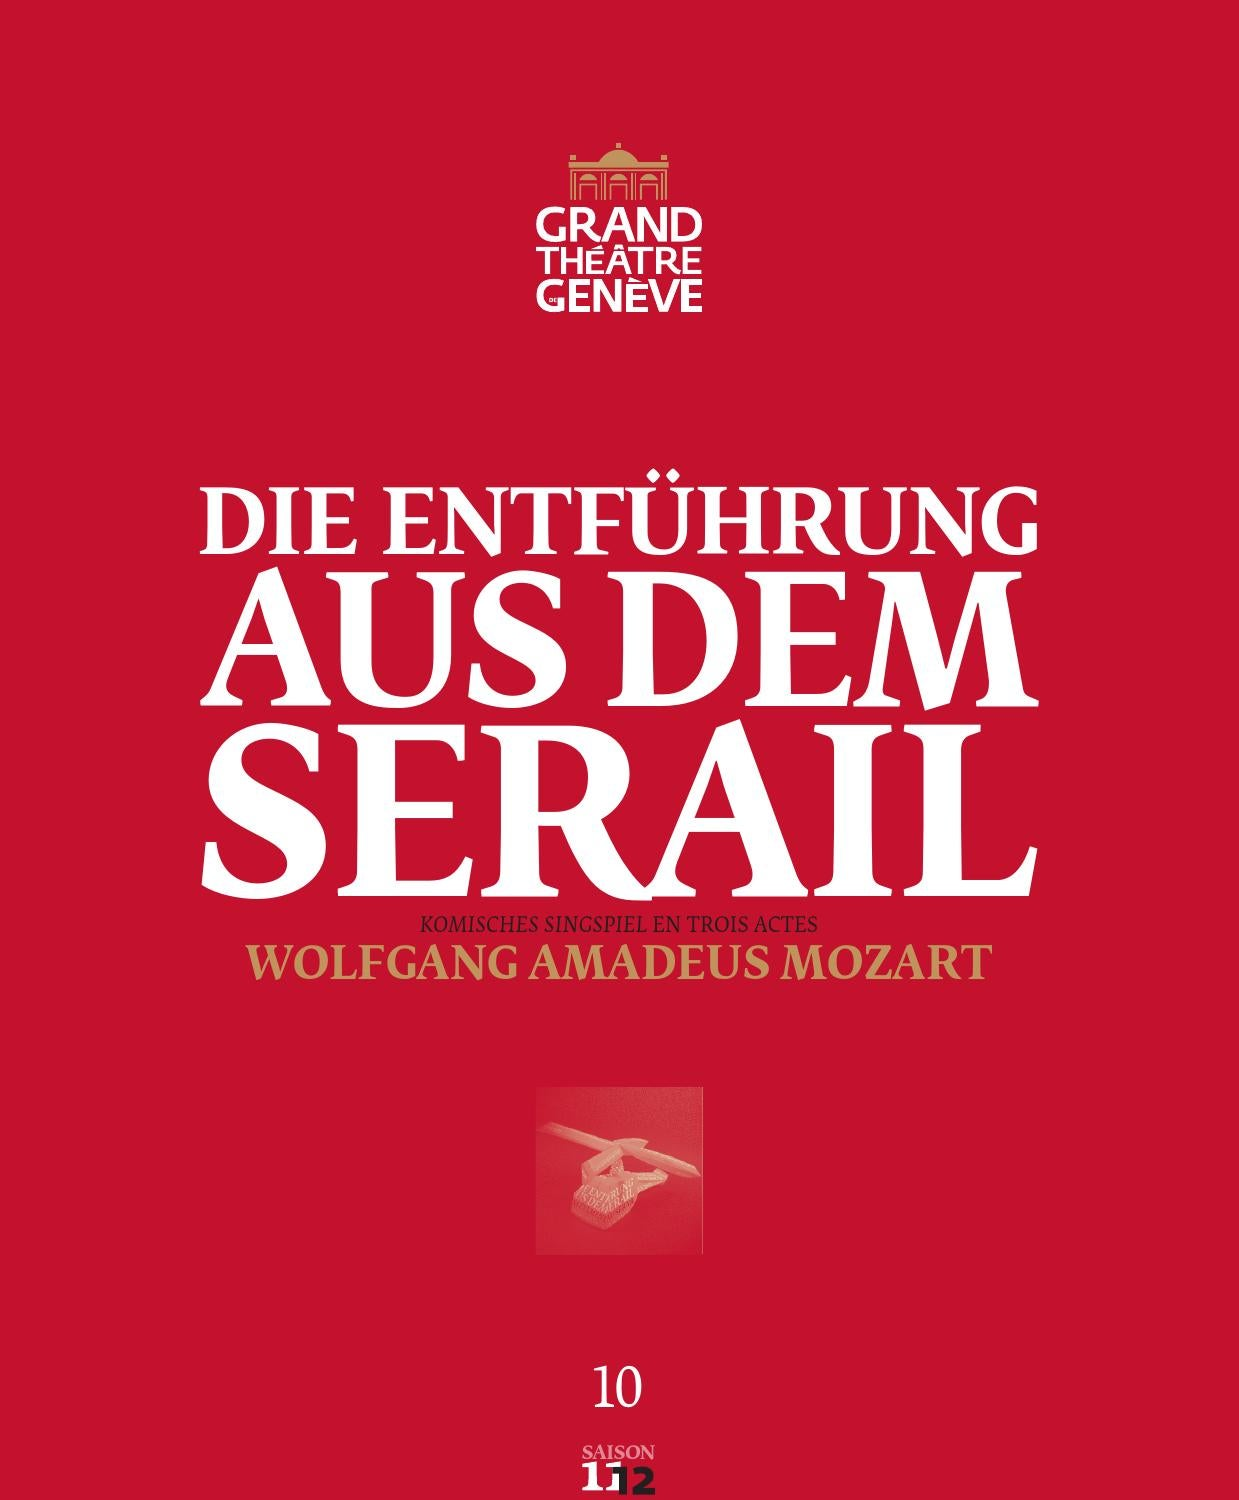 a review of the seraglio an opera by wolfgang amadeus mozart  from the seraglio a review by maria nockin  when first produced in 1782 in  vienna, wolfgang amadeus mozart's singspiel, the abduction from the seraglio,  was as popular as new york city's current hit show, hamilton.